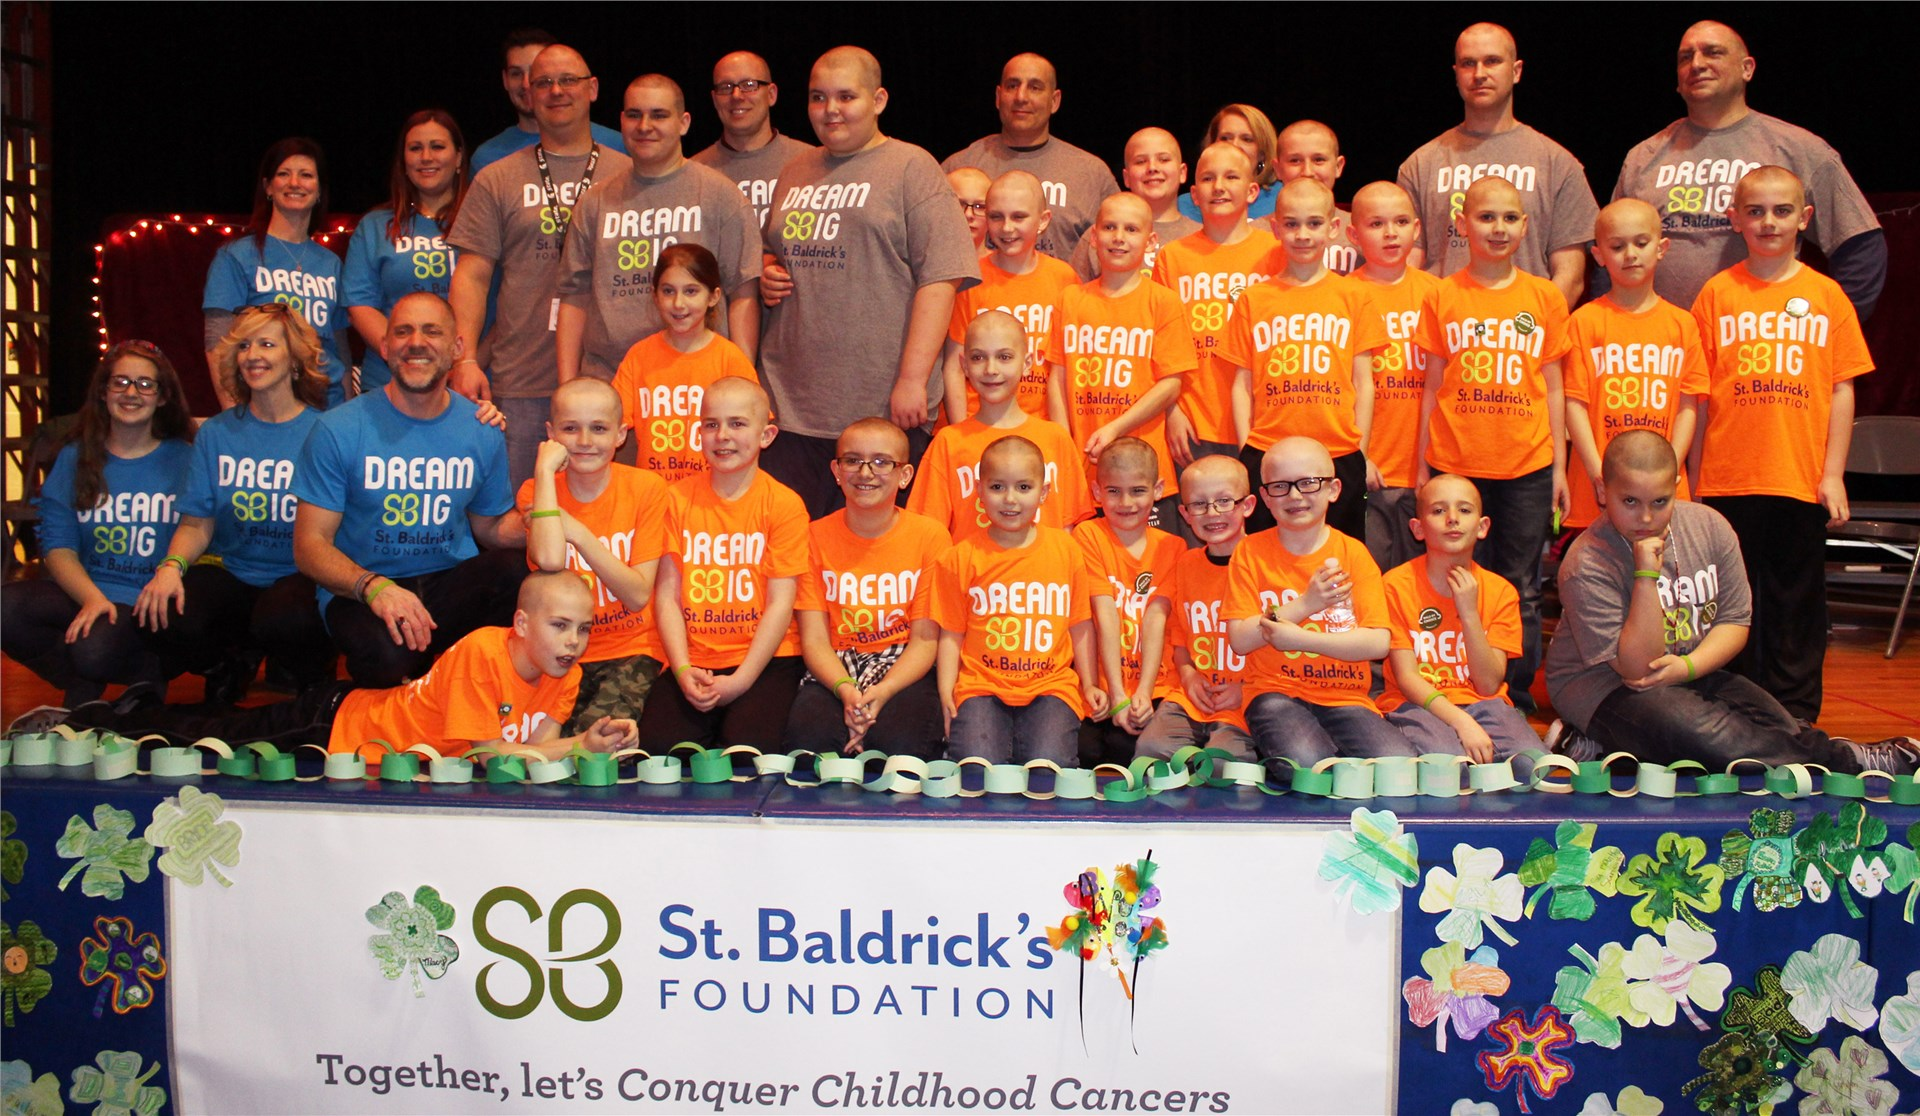 Aiken Elementary hosts an annual head-shaving event to raise money for the St. Baldrick's Foundation